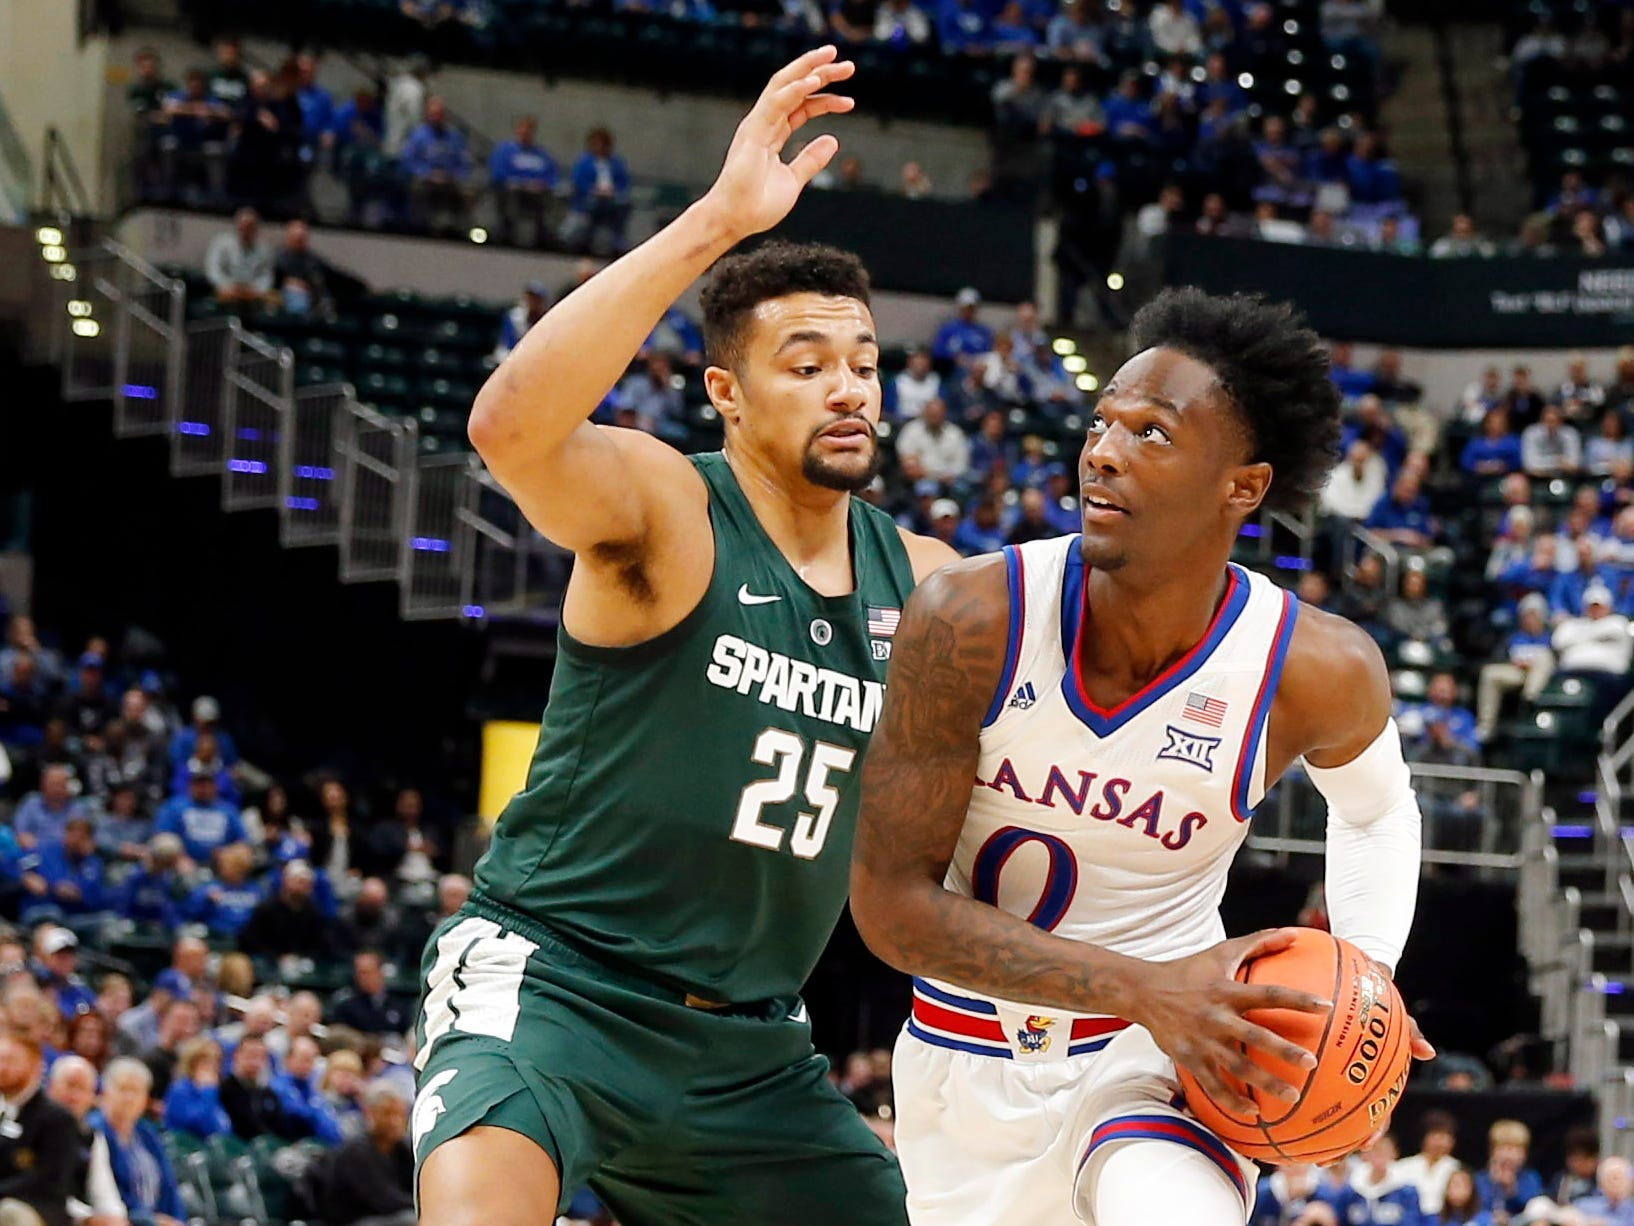 Kansas Jayhawks guard Marcus Garrett (0) drives to the basket against Michigan State Spartans forward Kenny Goins (25) in the first half during the Champions Classic at Bankers Life Fieldhouse.